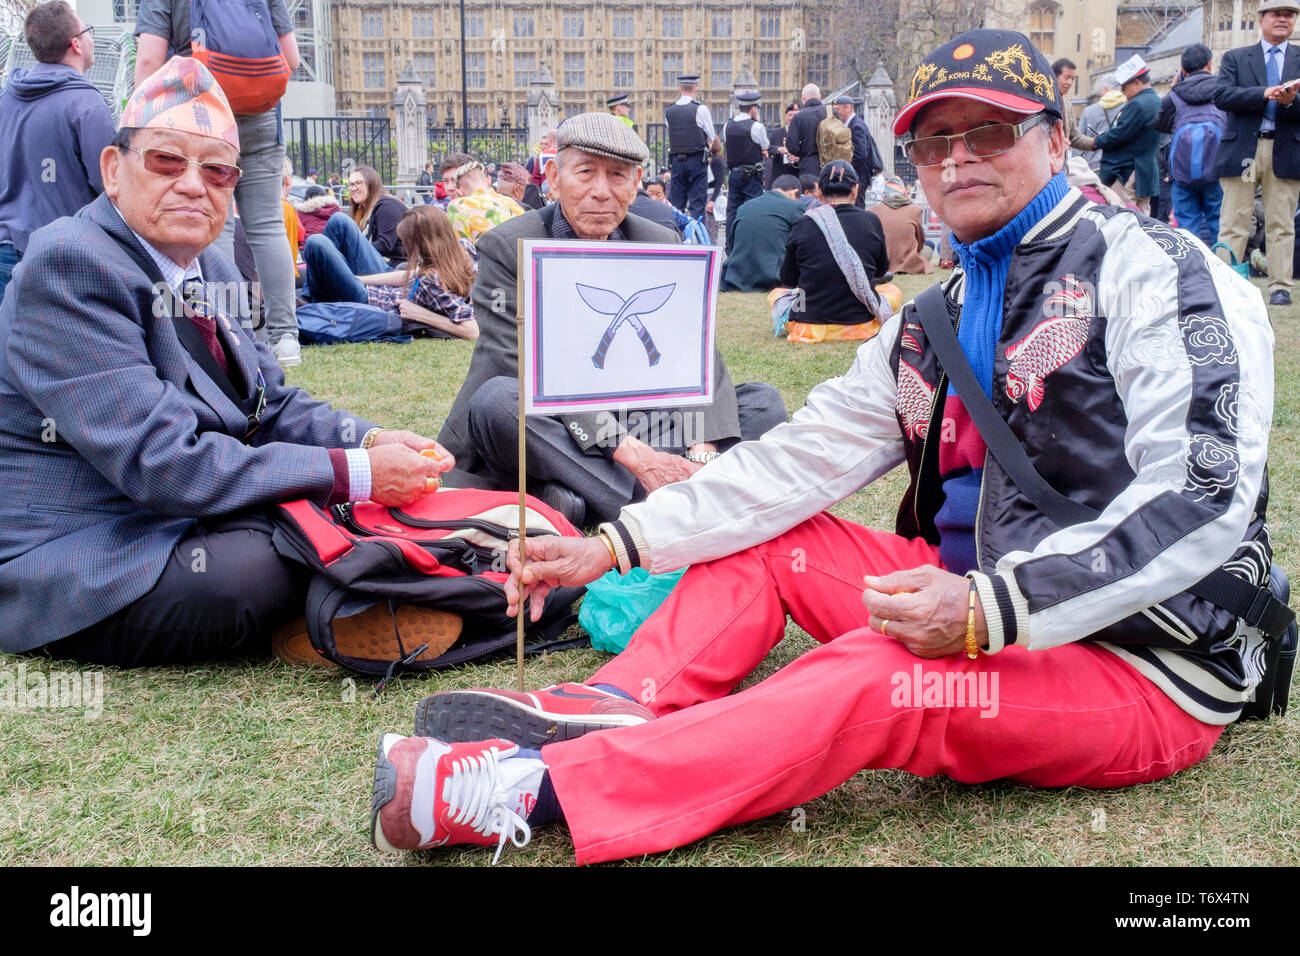 British Army Gurkha veterans rally in Parliament Square protesting against inequality in their army pensions and rights. London, UK - Stock Image